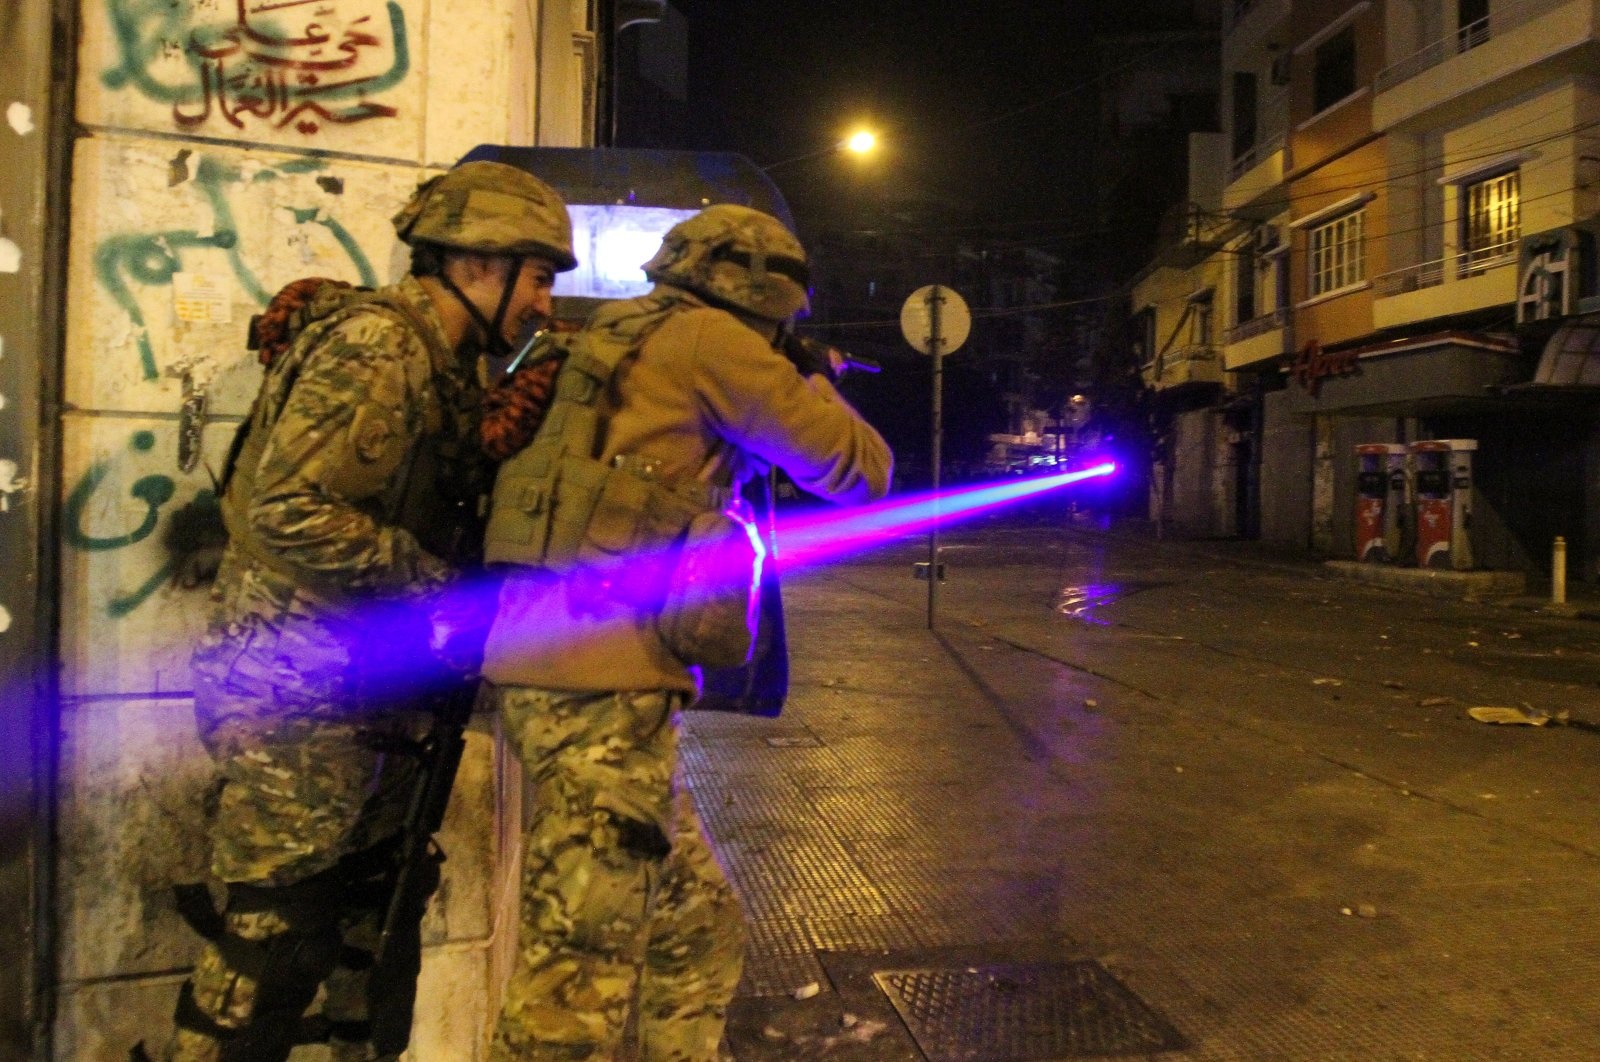 Army soldiers clash with demonstrators during a protest against the lockdown and worsening economic conditions, amid the spread of the coronavirus, in Tripoli, Lebanon on Jan. 26, 2021. (Reuters Photo)